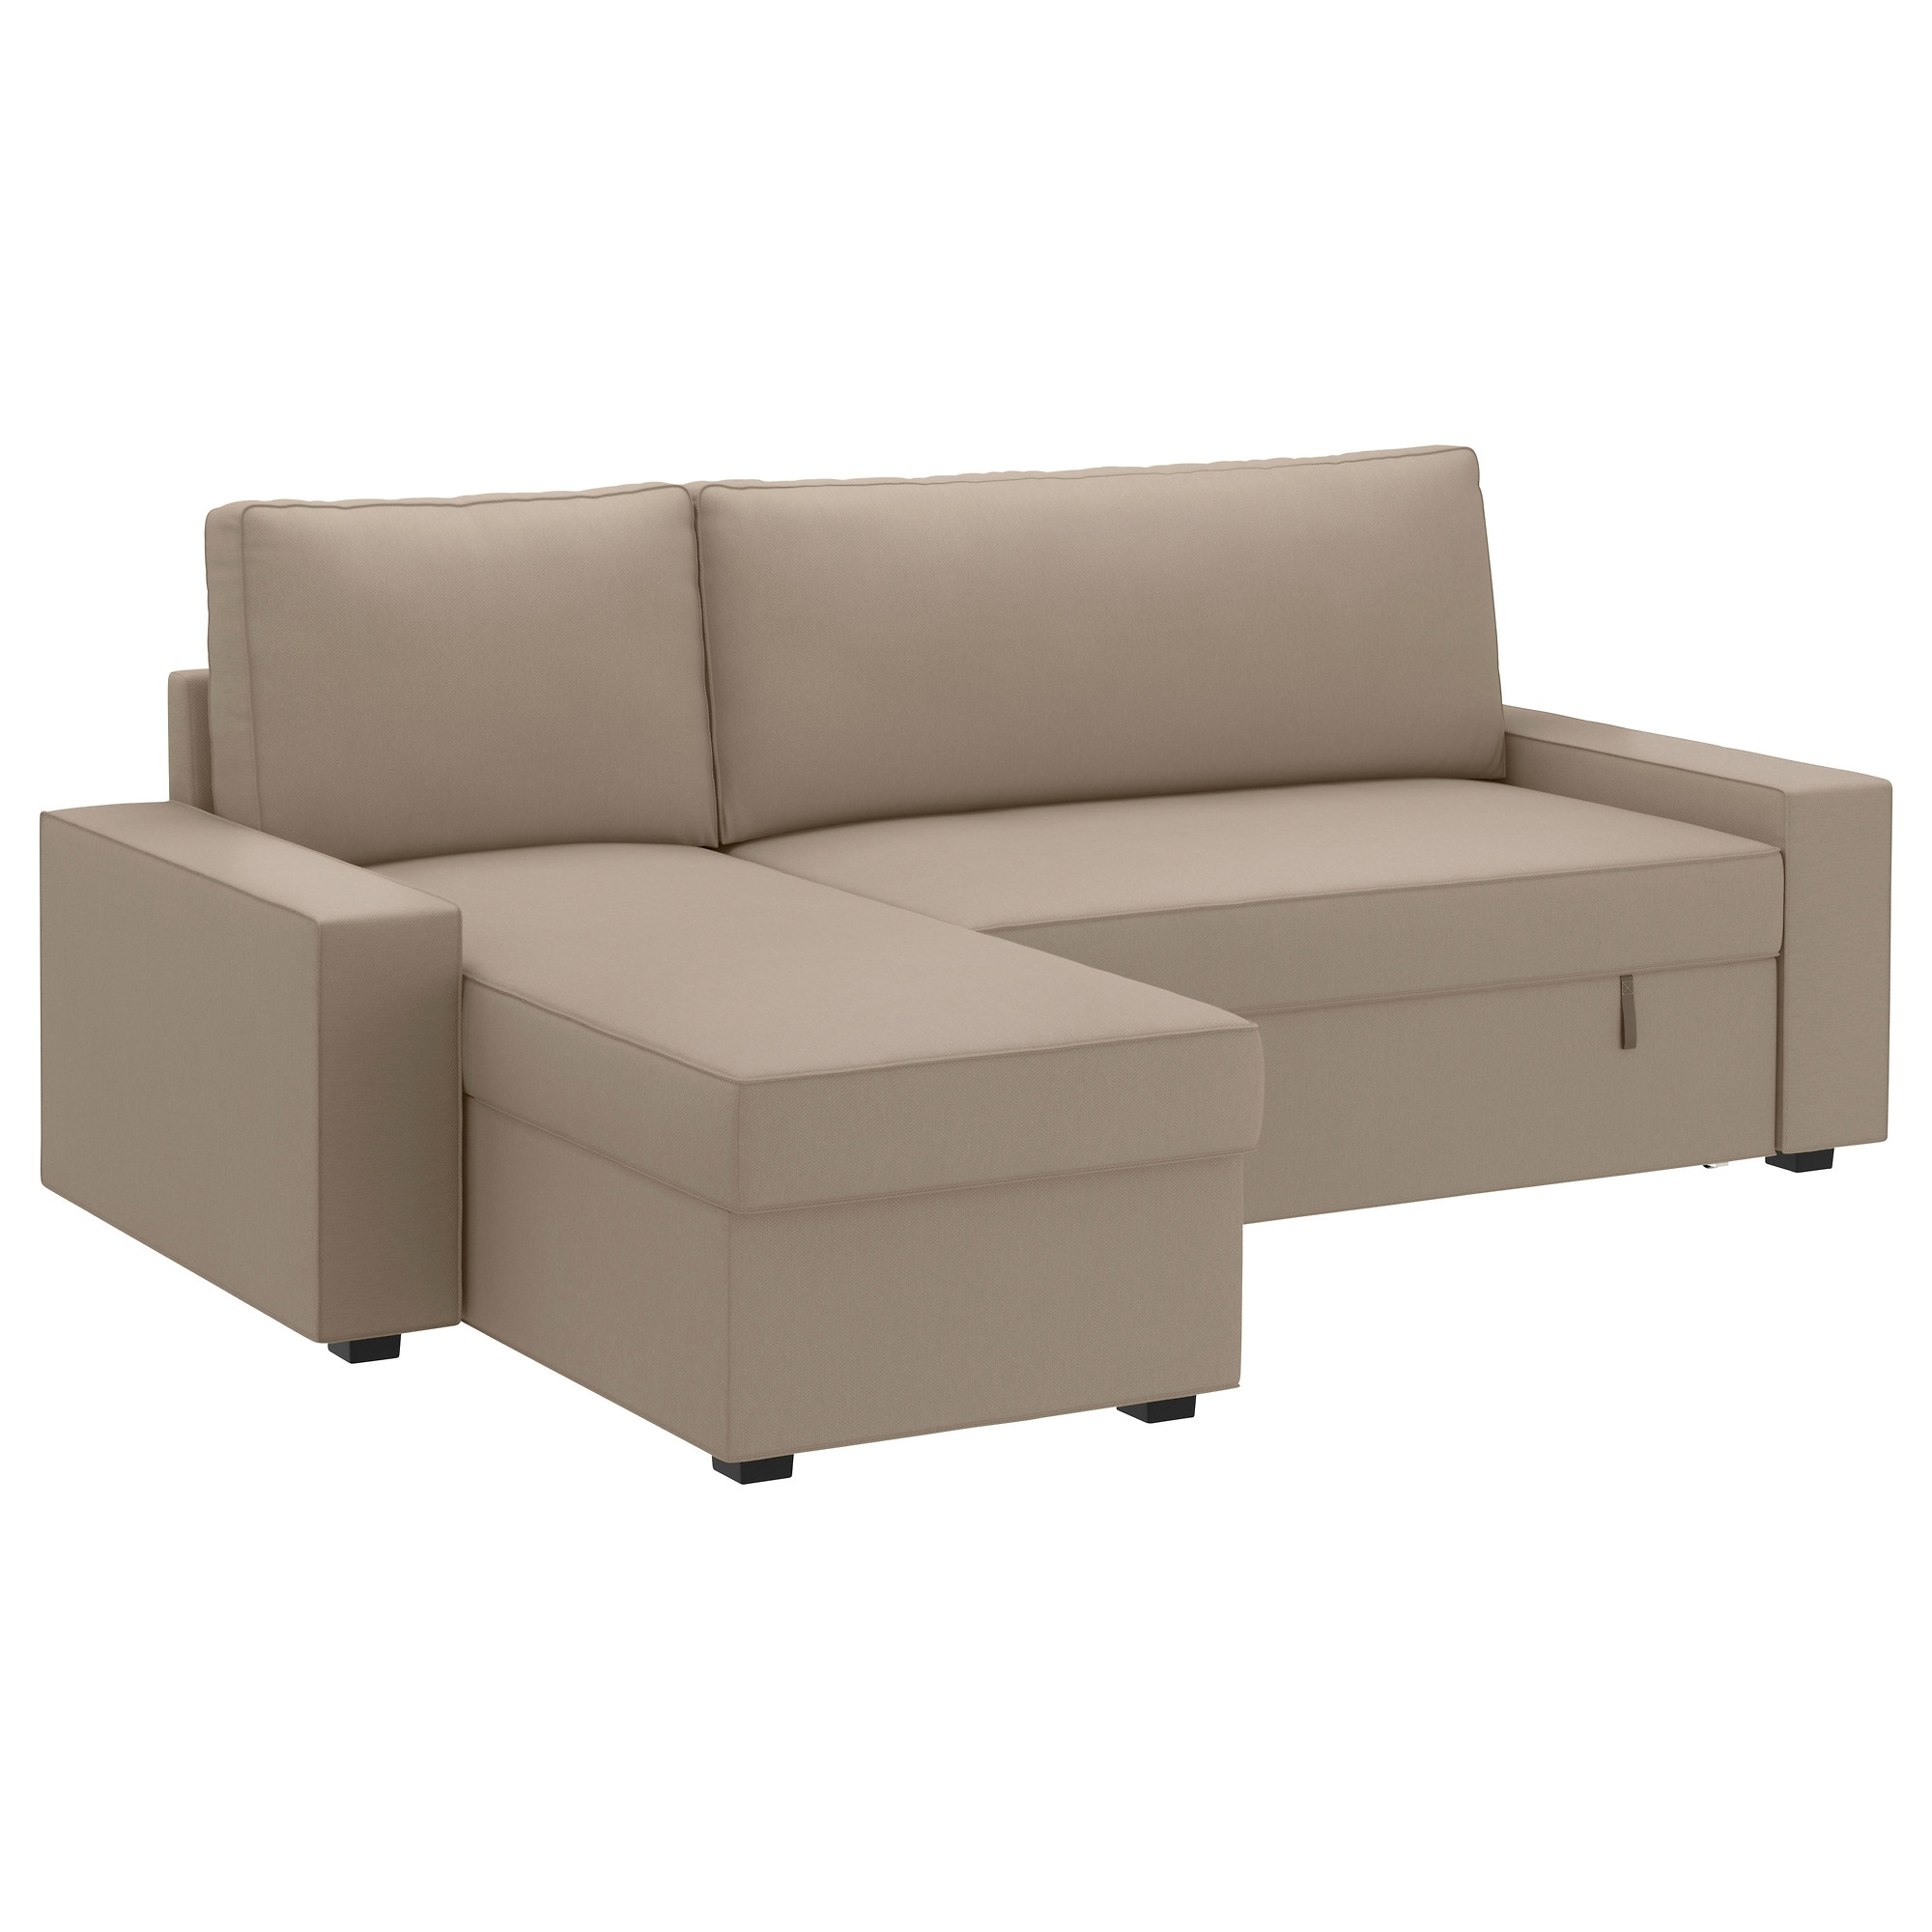 New With Regard To Most Current Chaise Sofa Beds (View 11 of 15)